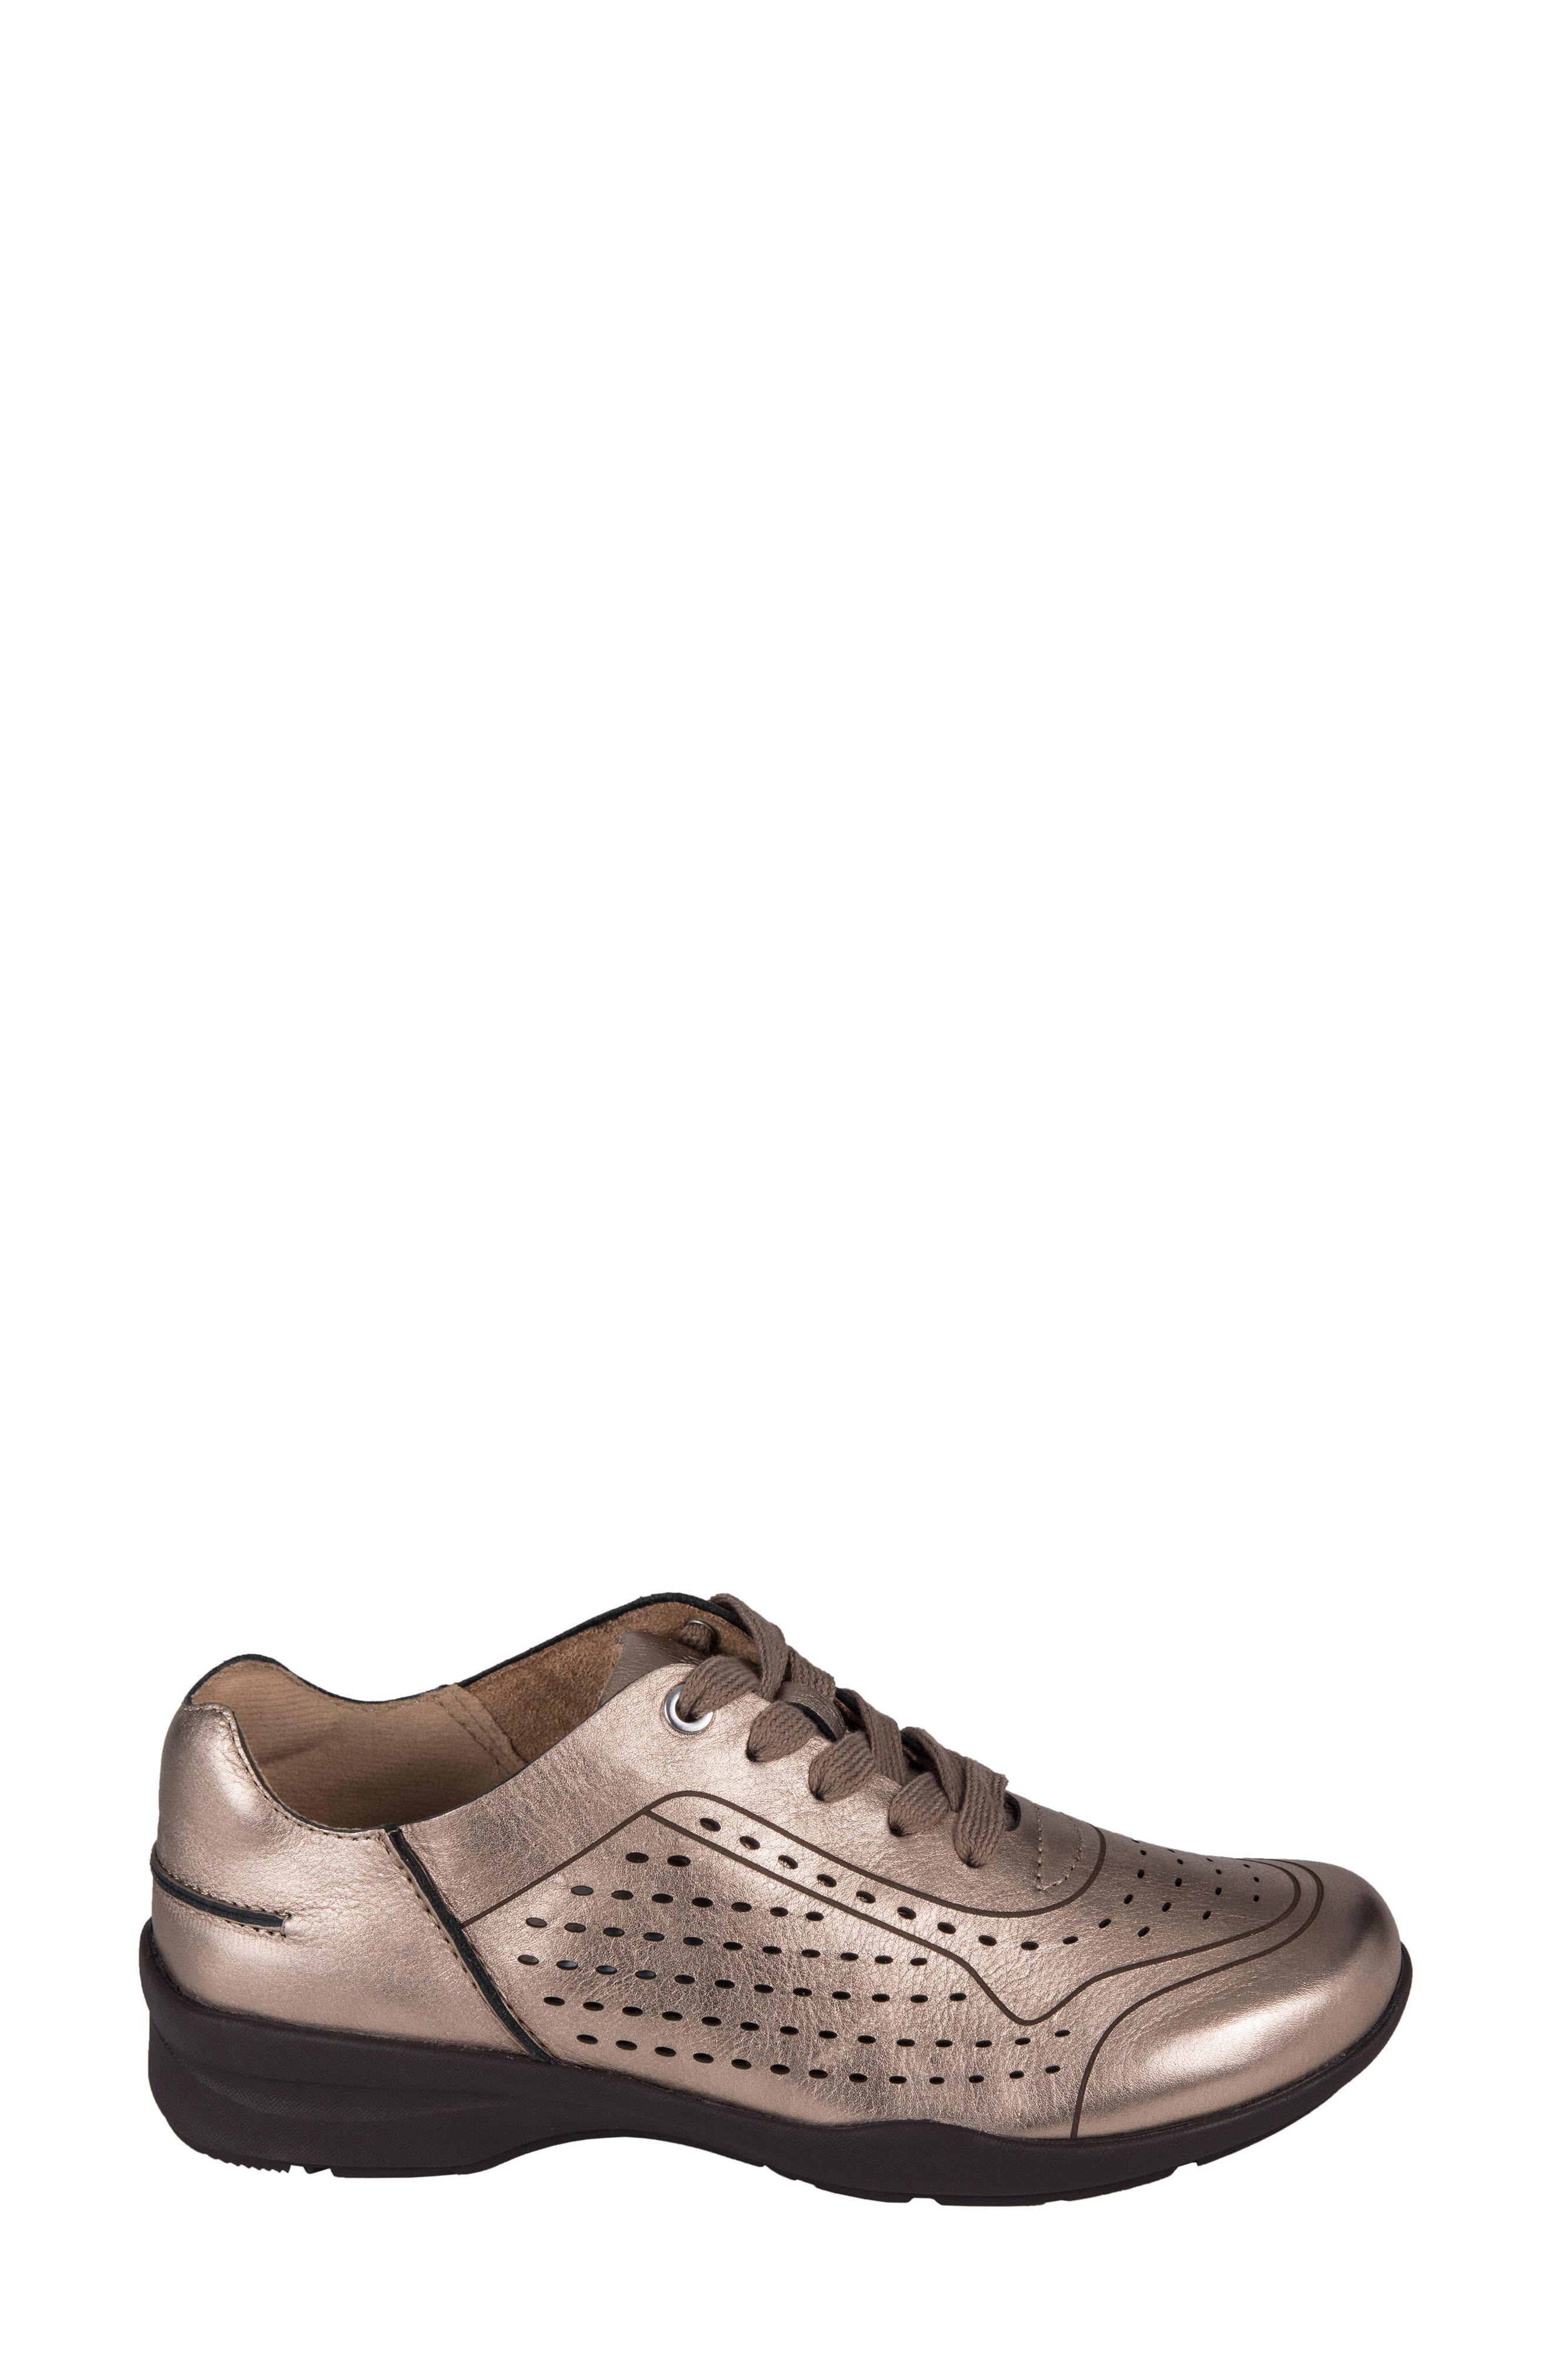 Serval Perforated Sneaker,                             Alternate thumbnail 3, color,                             Champagne Metallic Leather